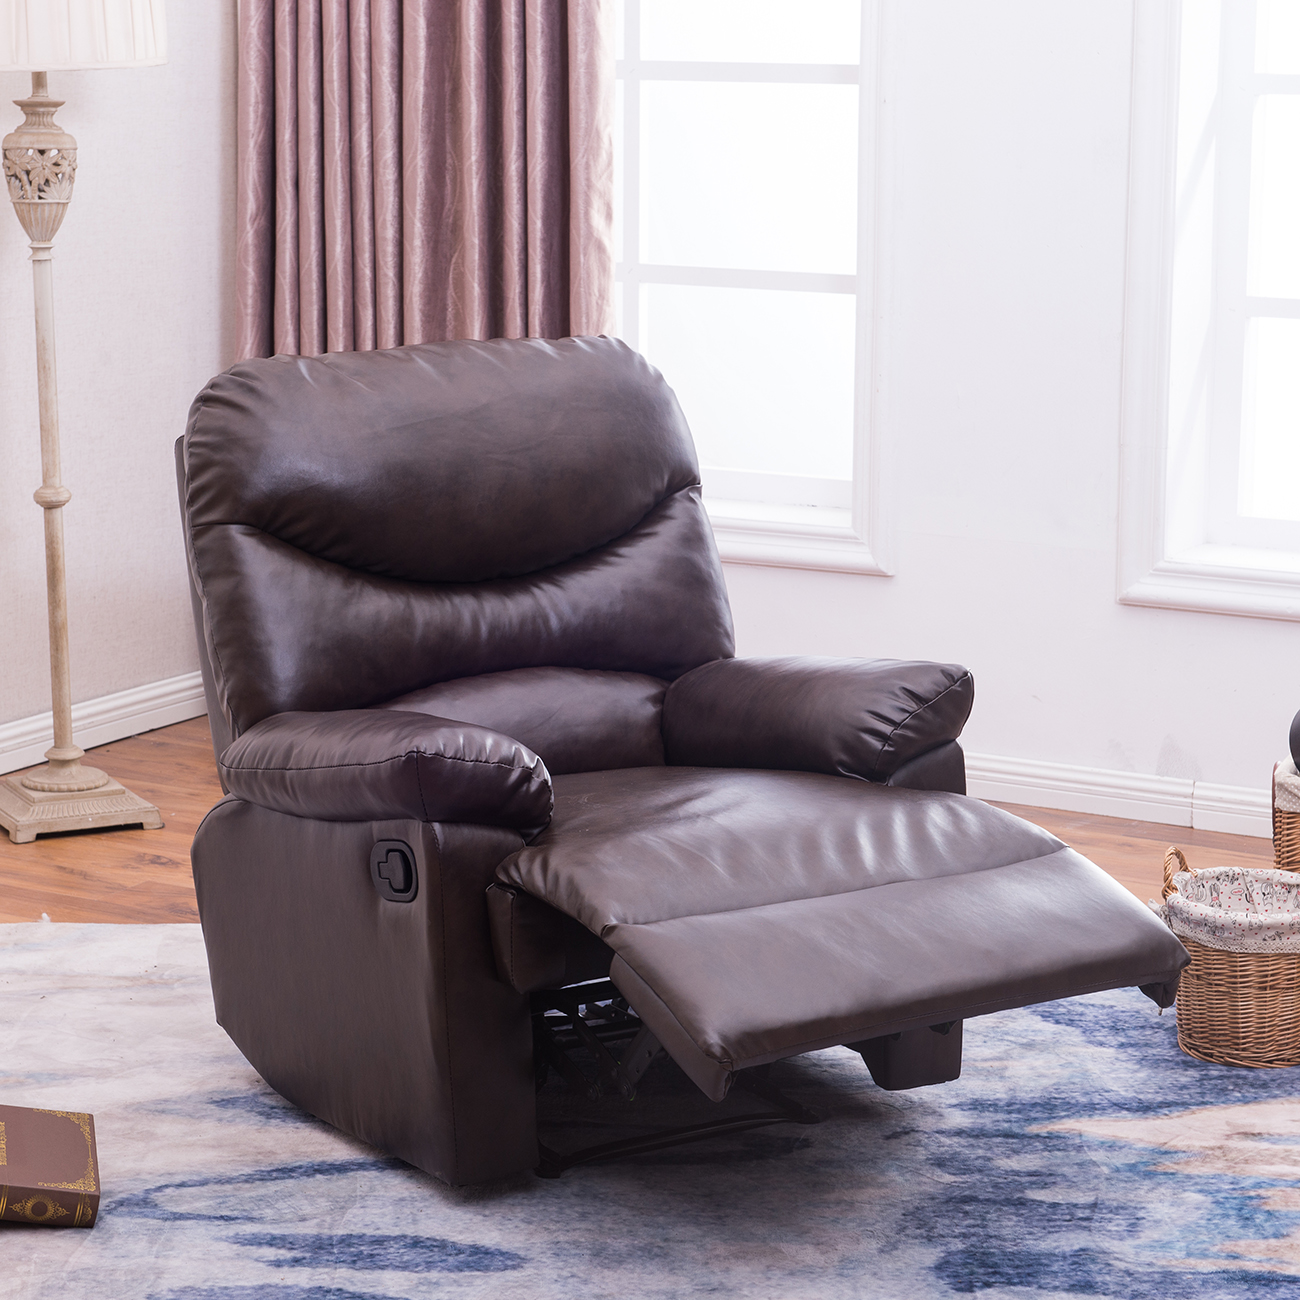 Details About New Contemporary Faux Leather Recliner Club Chair Room Sofa Chair Black Brown